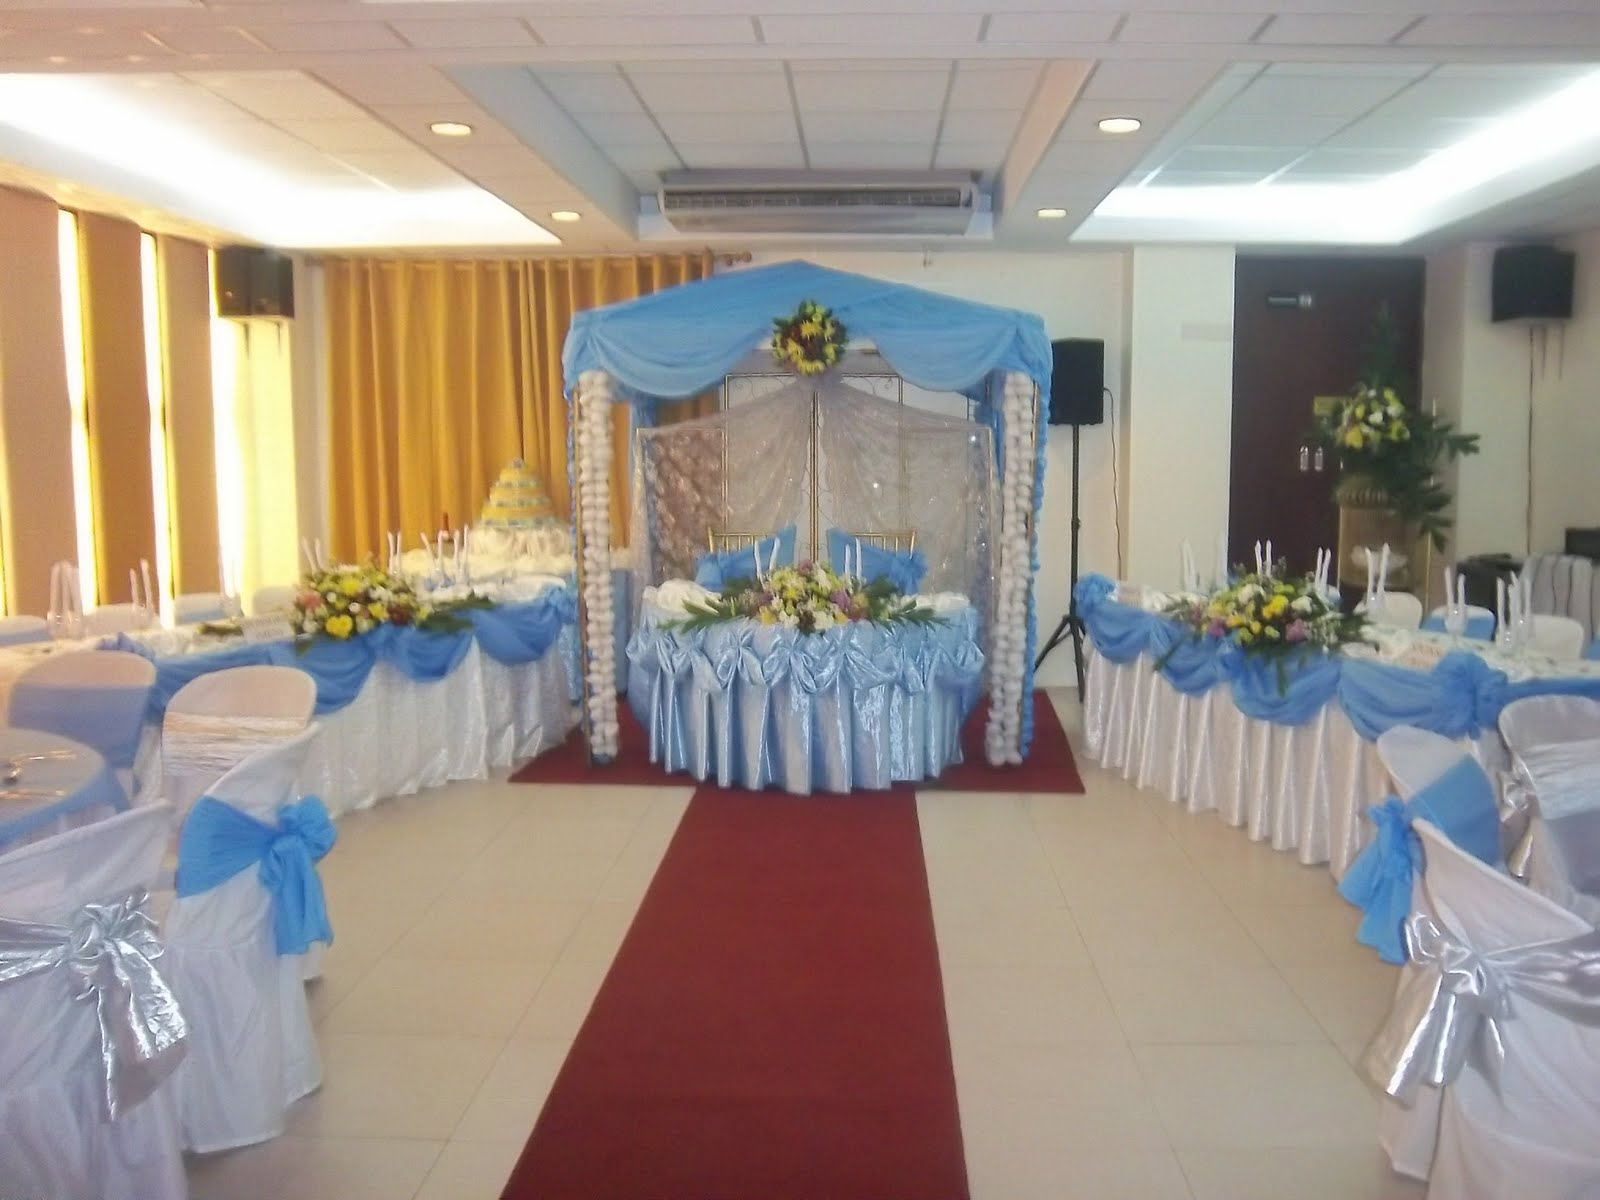 The Cherilyn Catering Company: Other set up Wedding